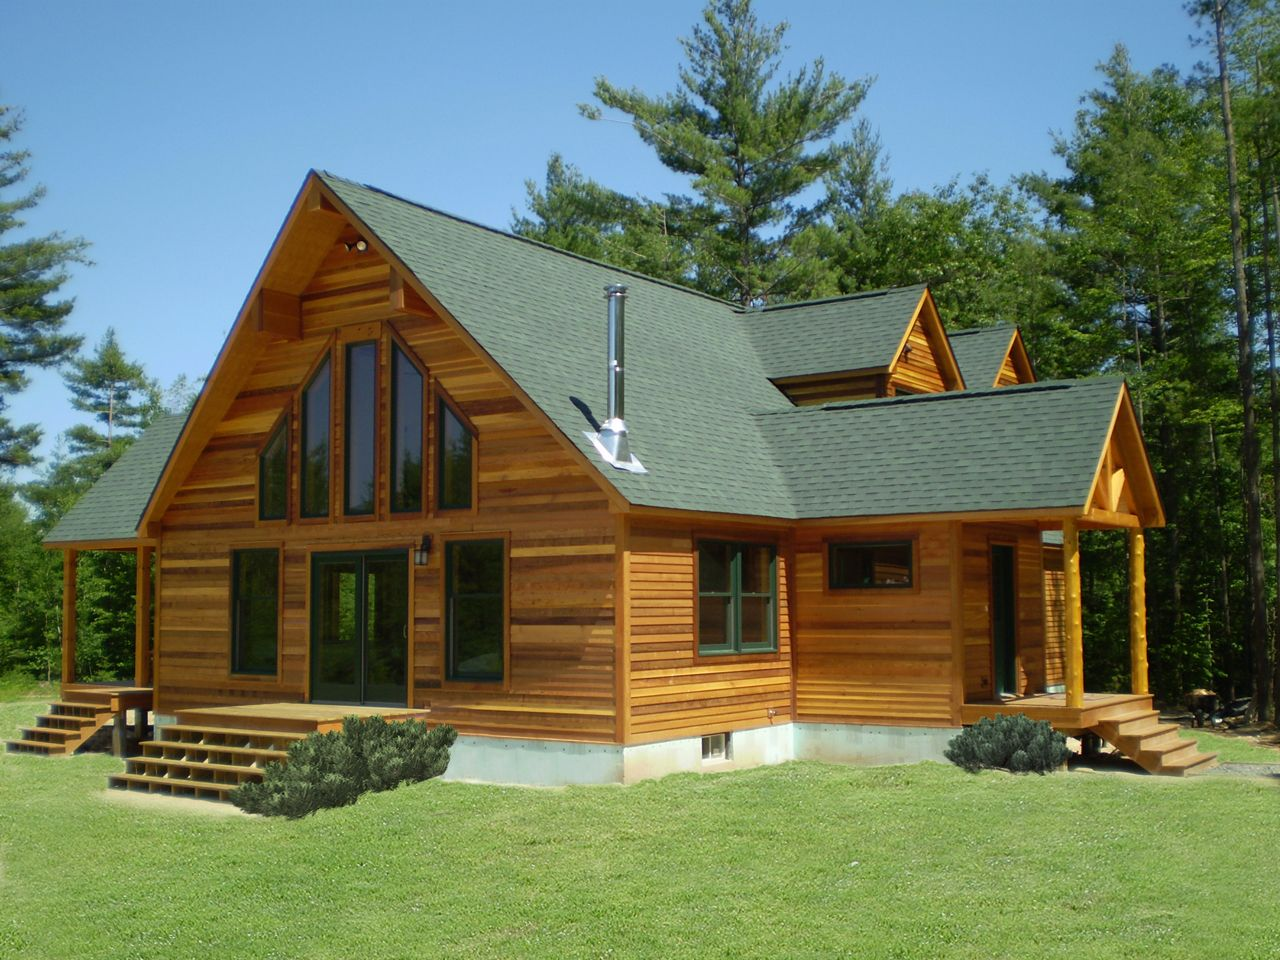 Modular Homes Is To Deliver Affordable Energy Efficient Custom Modular Homes